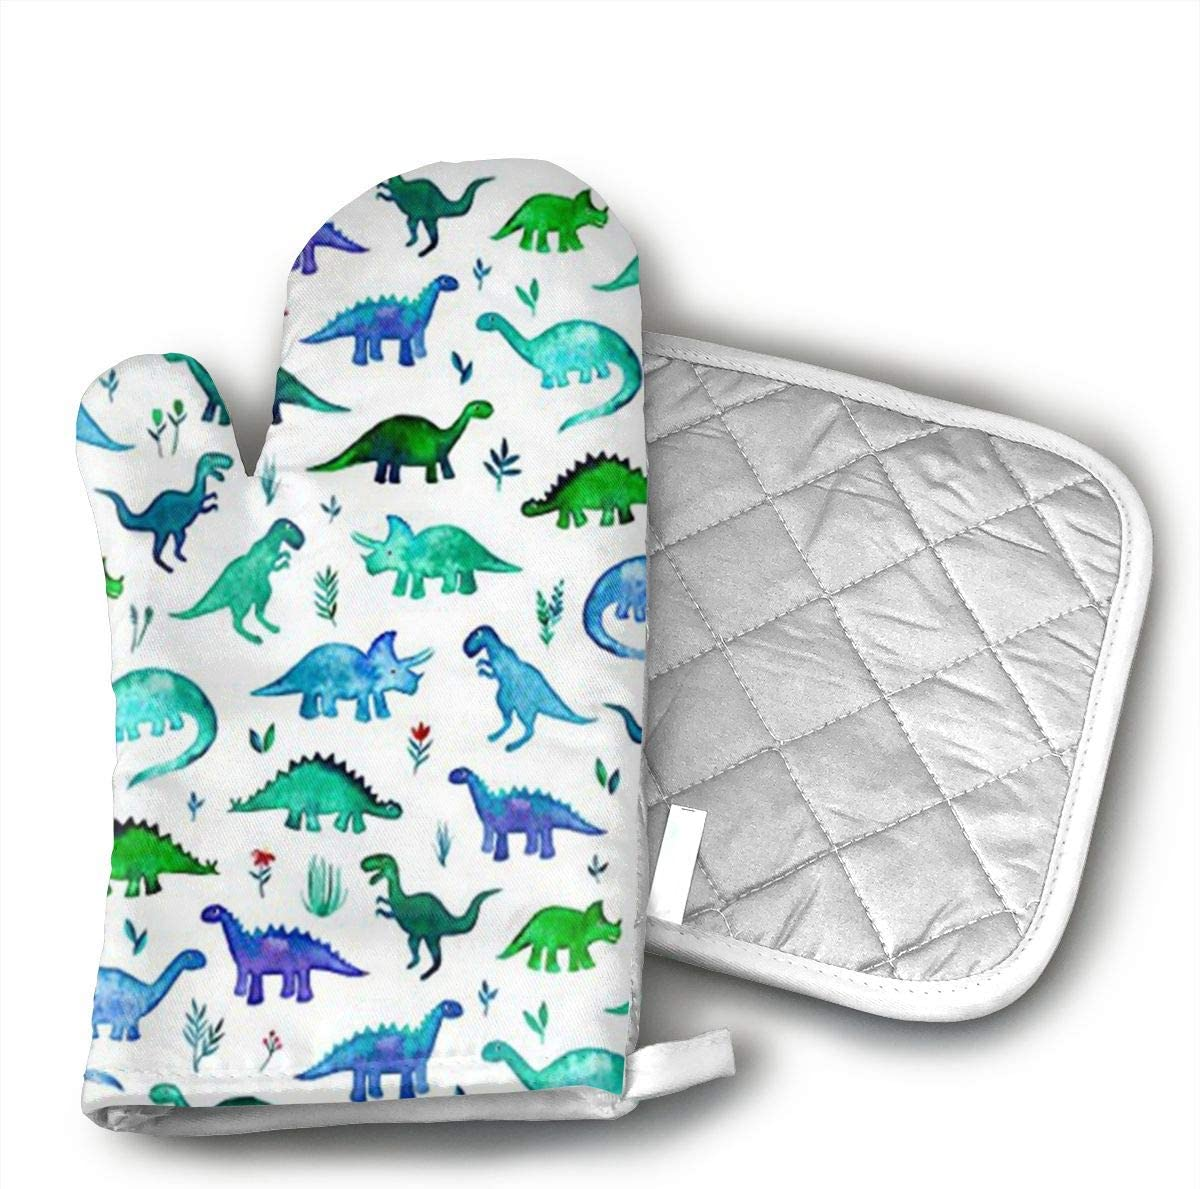 JFNNRUOP Dinosaurs Fabric Tiny Dinos in Blue and Green Oven Mitts,with Potholders Oven Gloves,Insulated Quilted Cotton Potholders